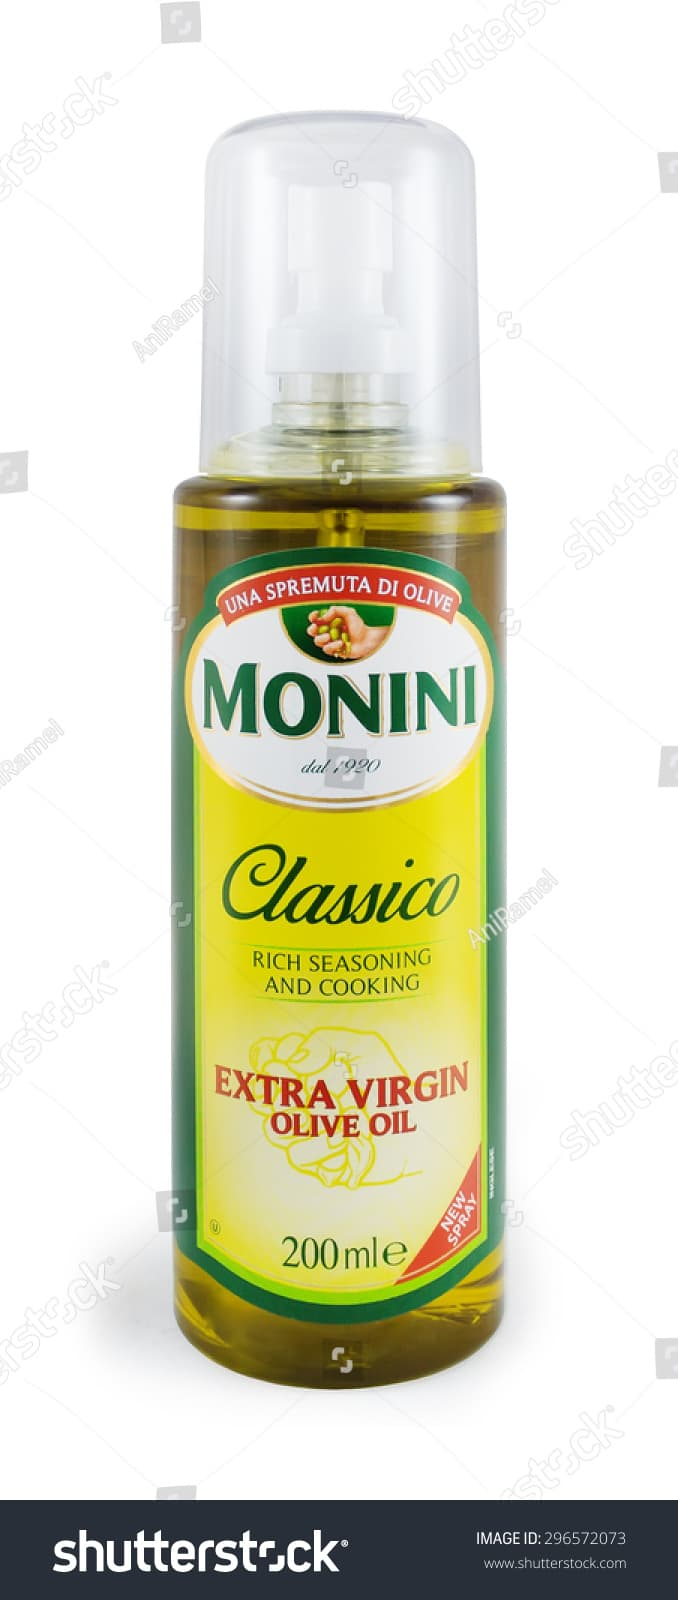 stock-photo-moscow-july-olive-oil-spray-monini-296572073.jpg